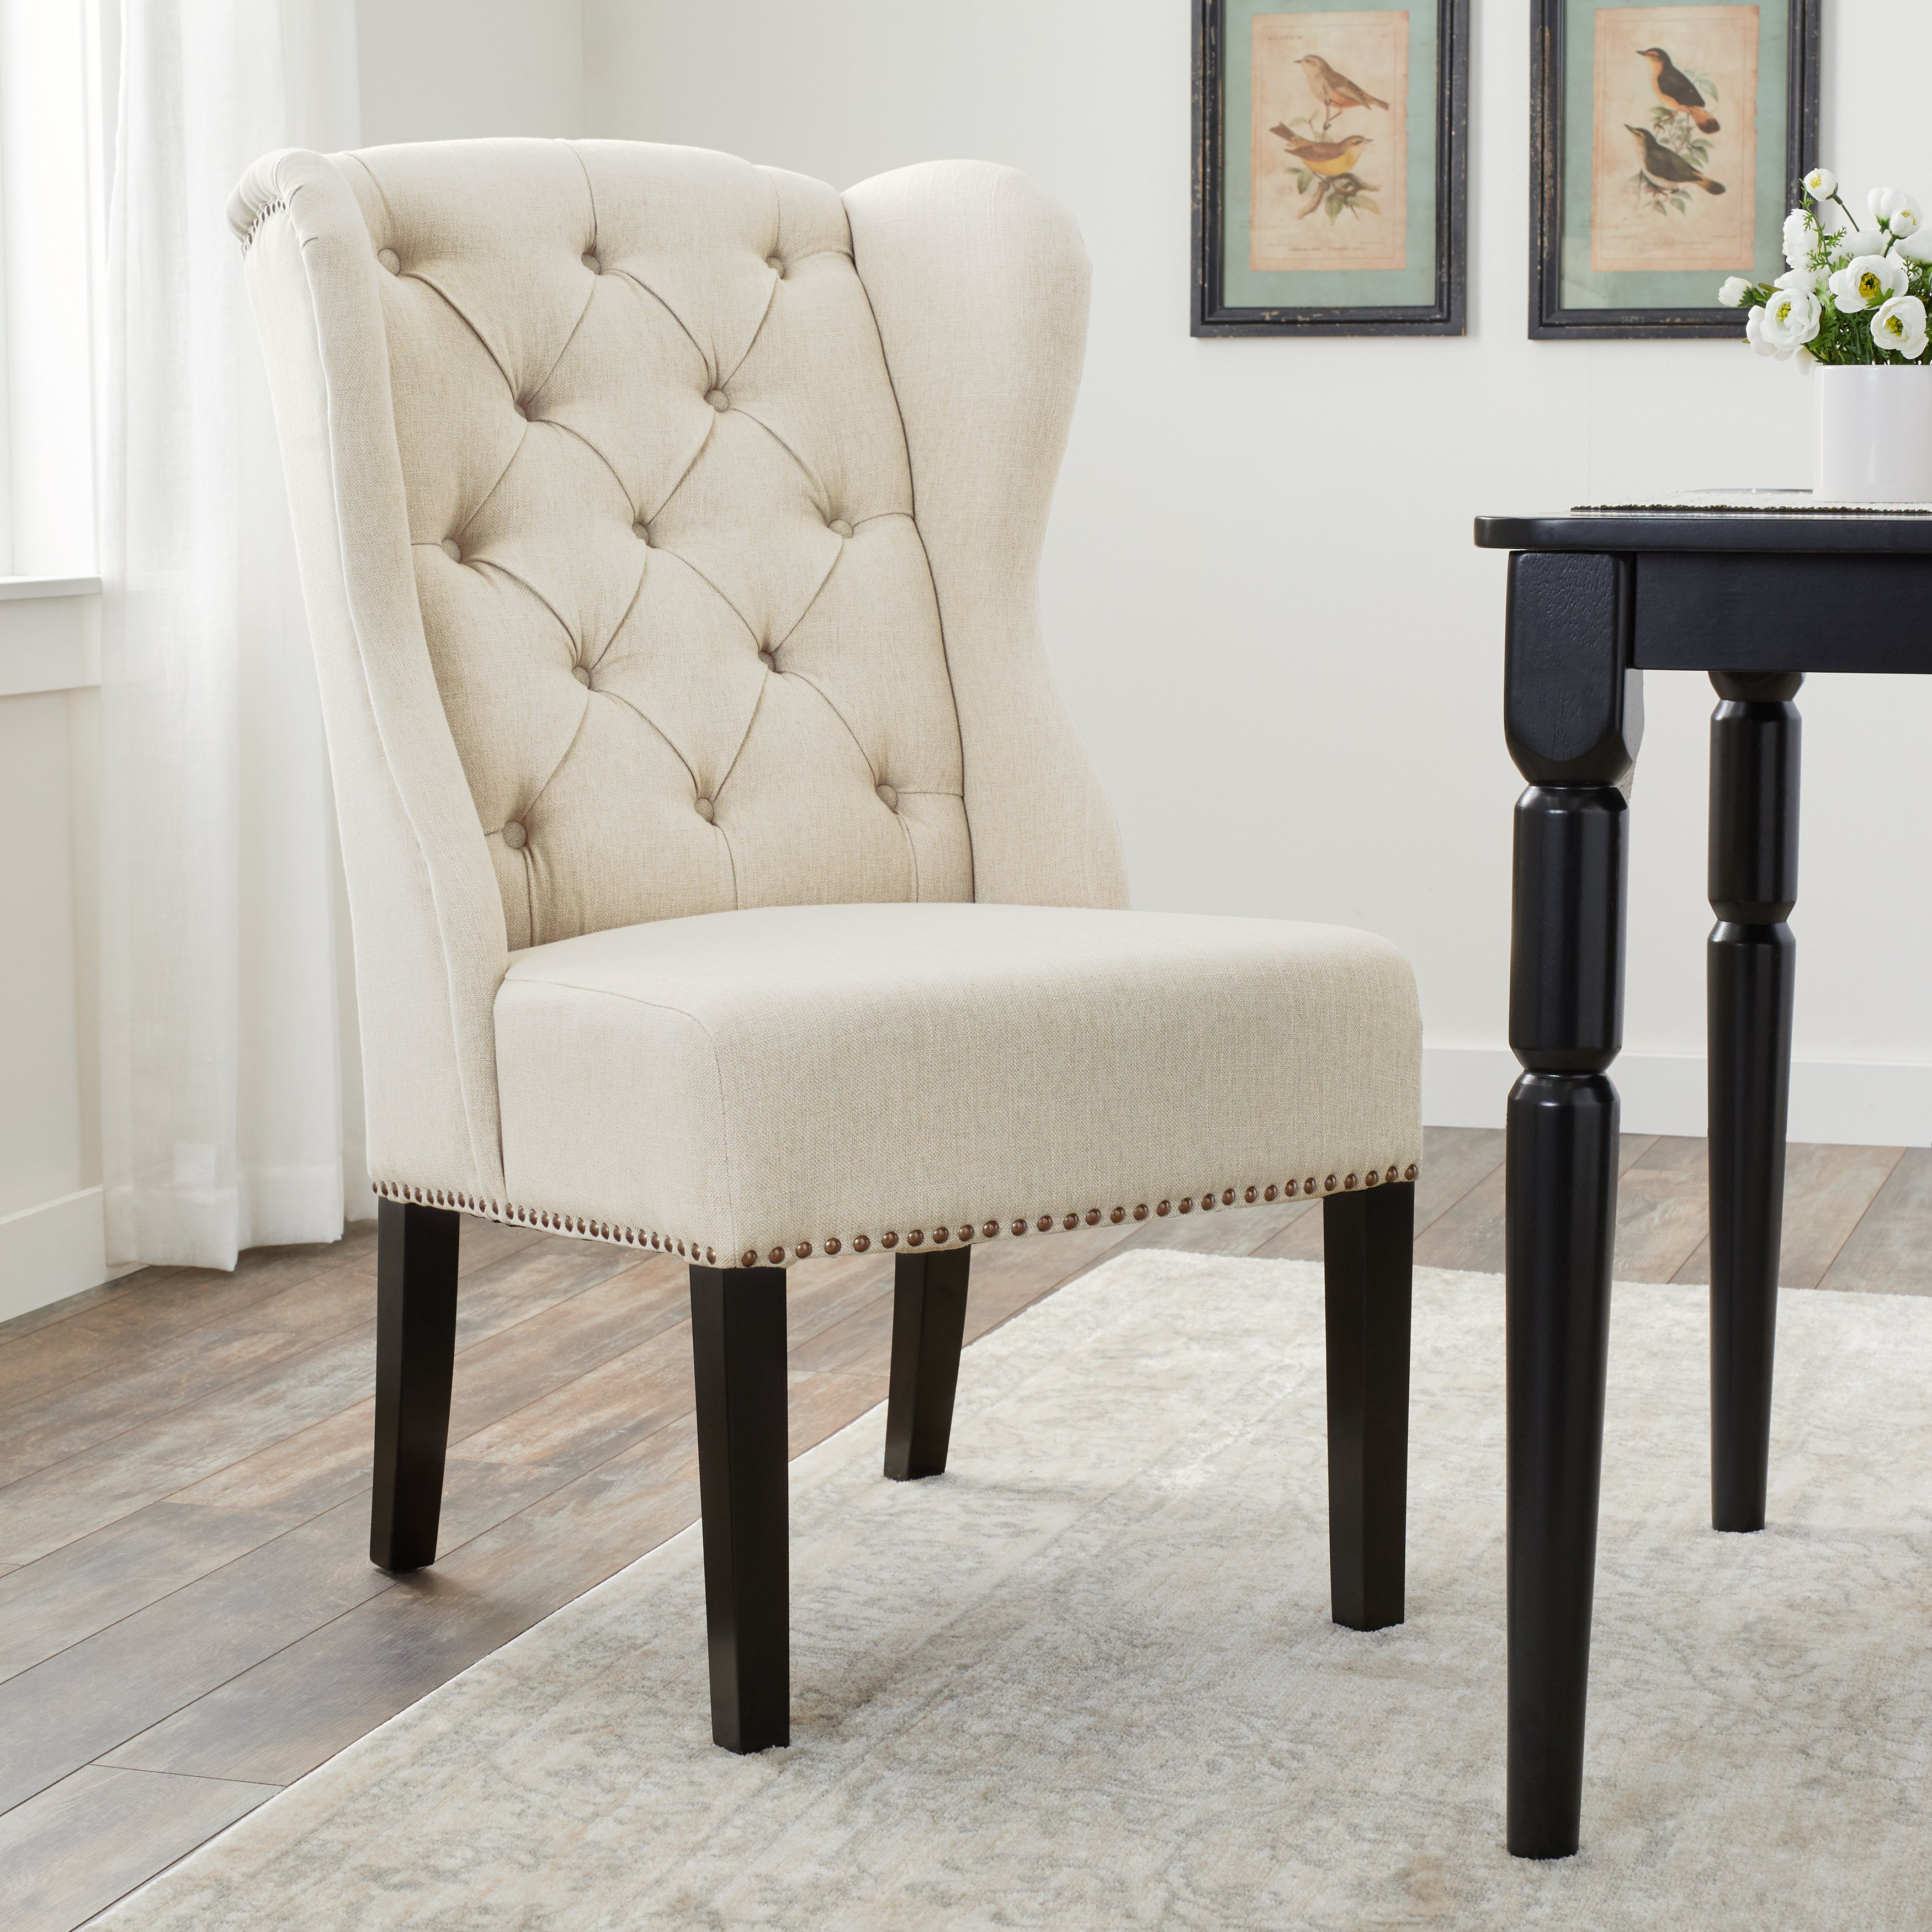 Shop Abbyson Sierra Tufted Cream Linen Wingback Dining Chair – Free With Regard To Sierra Foam Ii Oversized Sofa Chairs (Image 11 of 25)